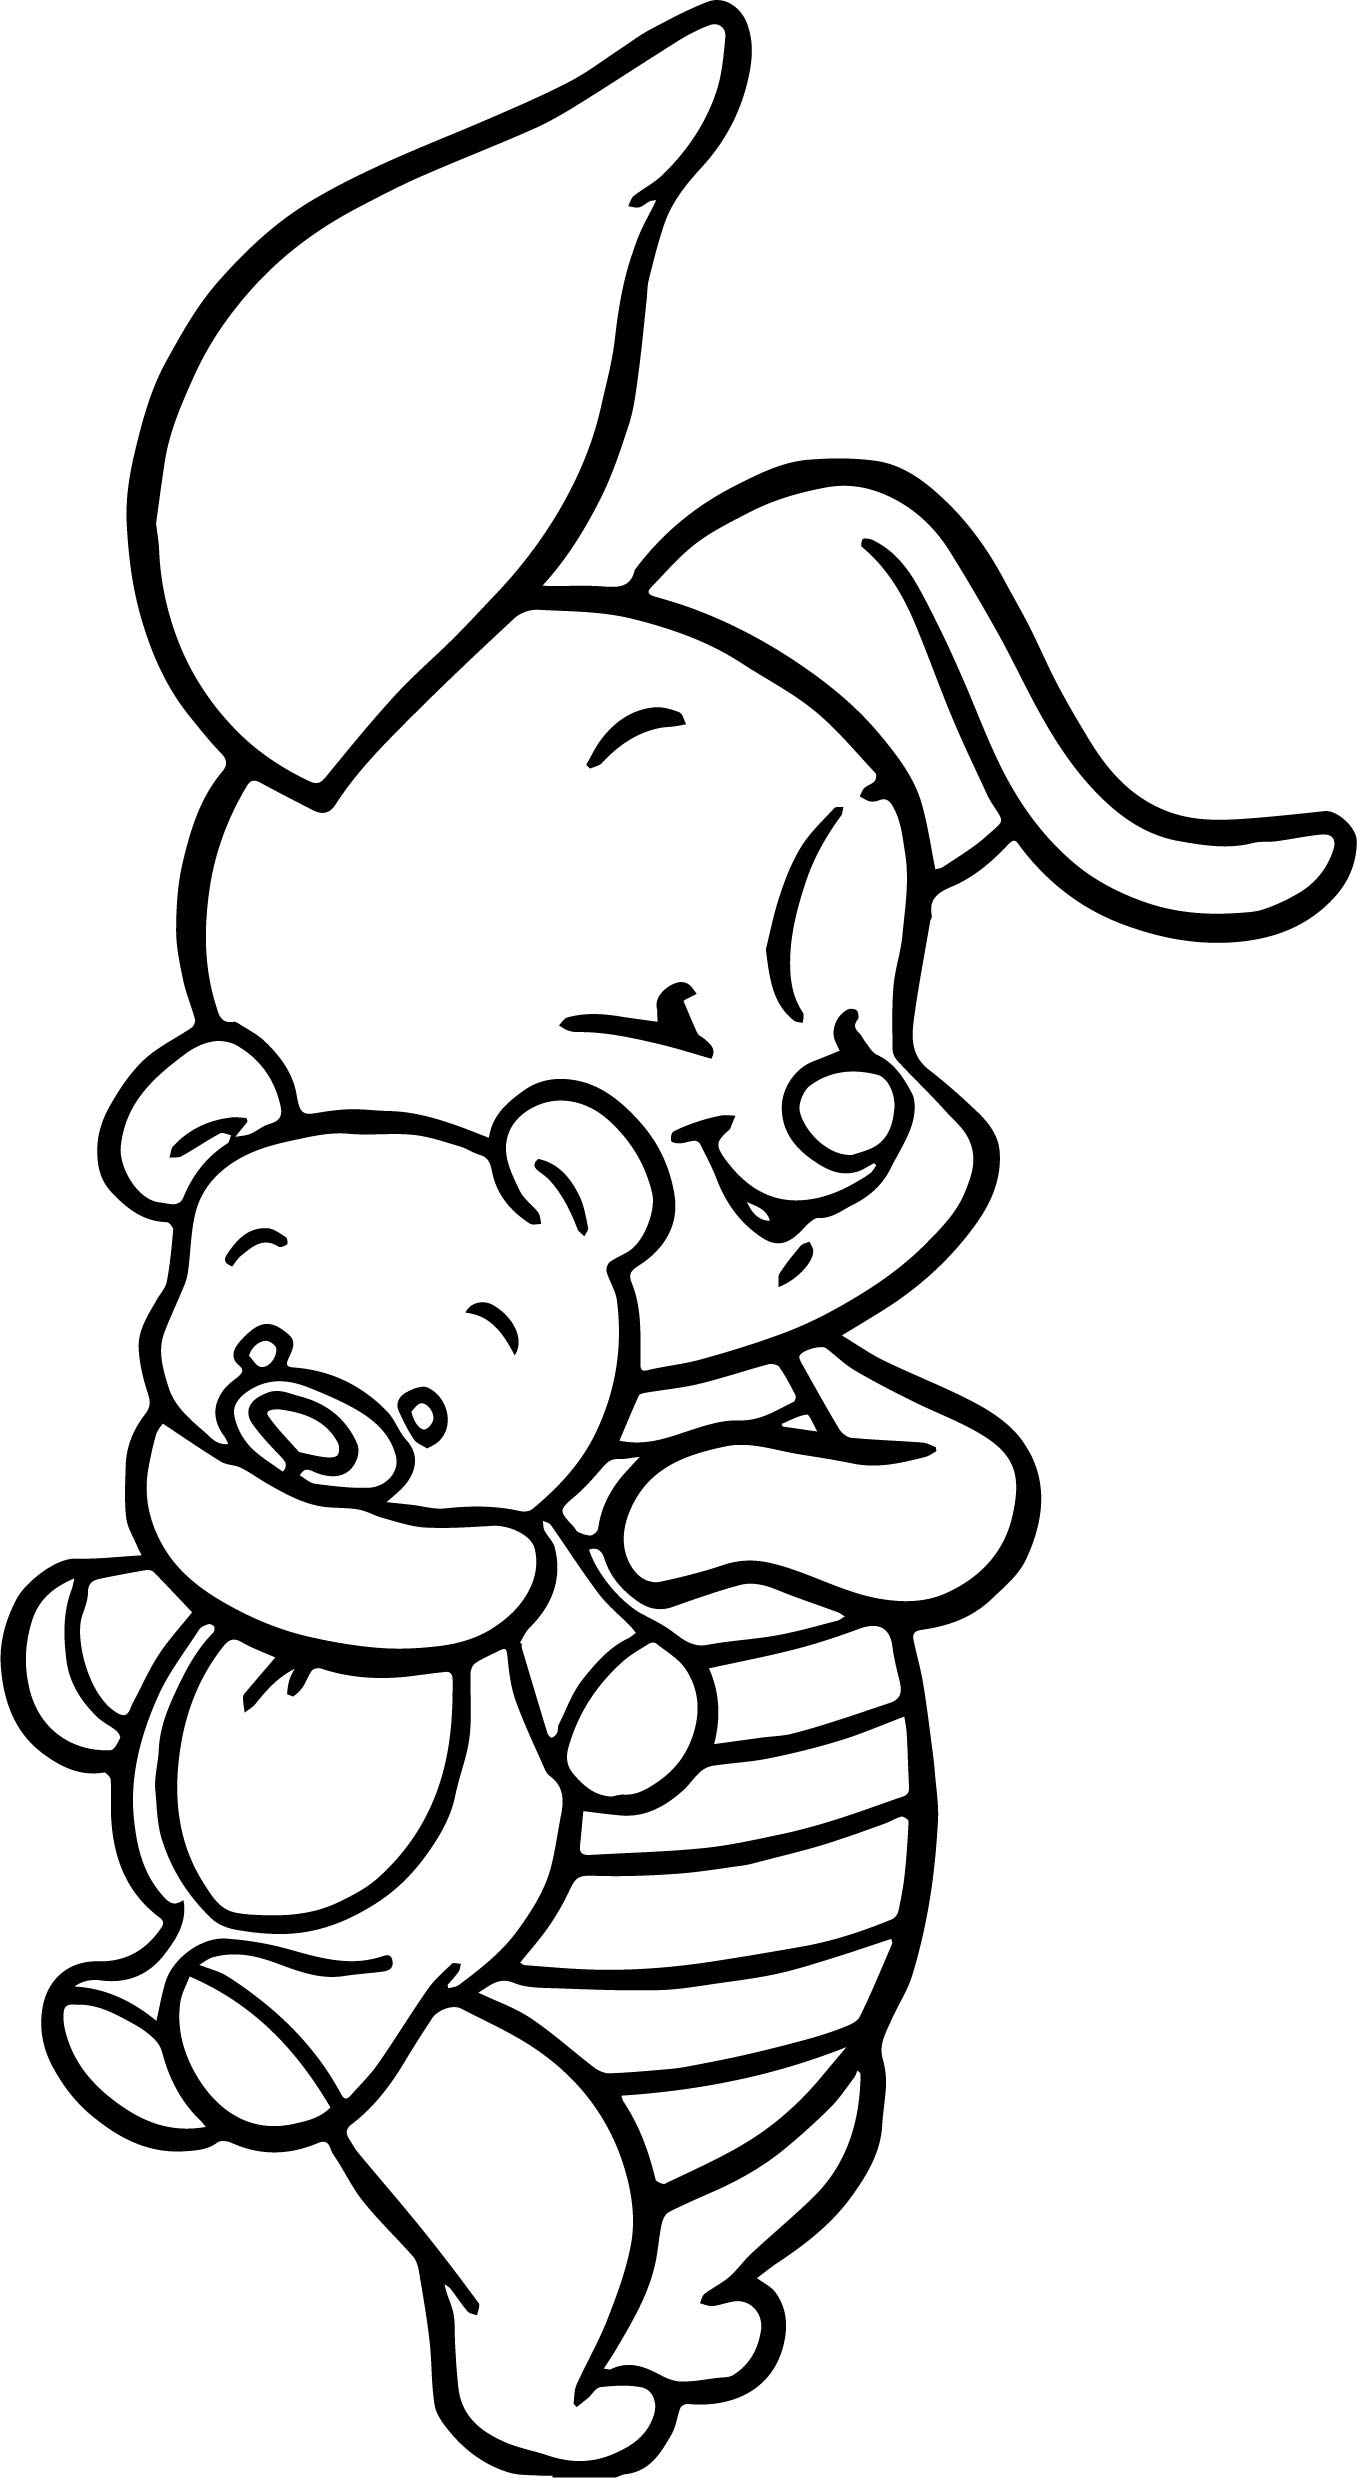 baby piglet and bear toy winnie the pooh coloring page